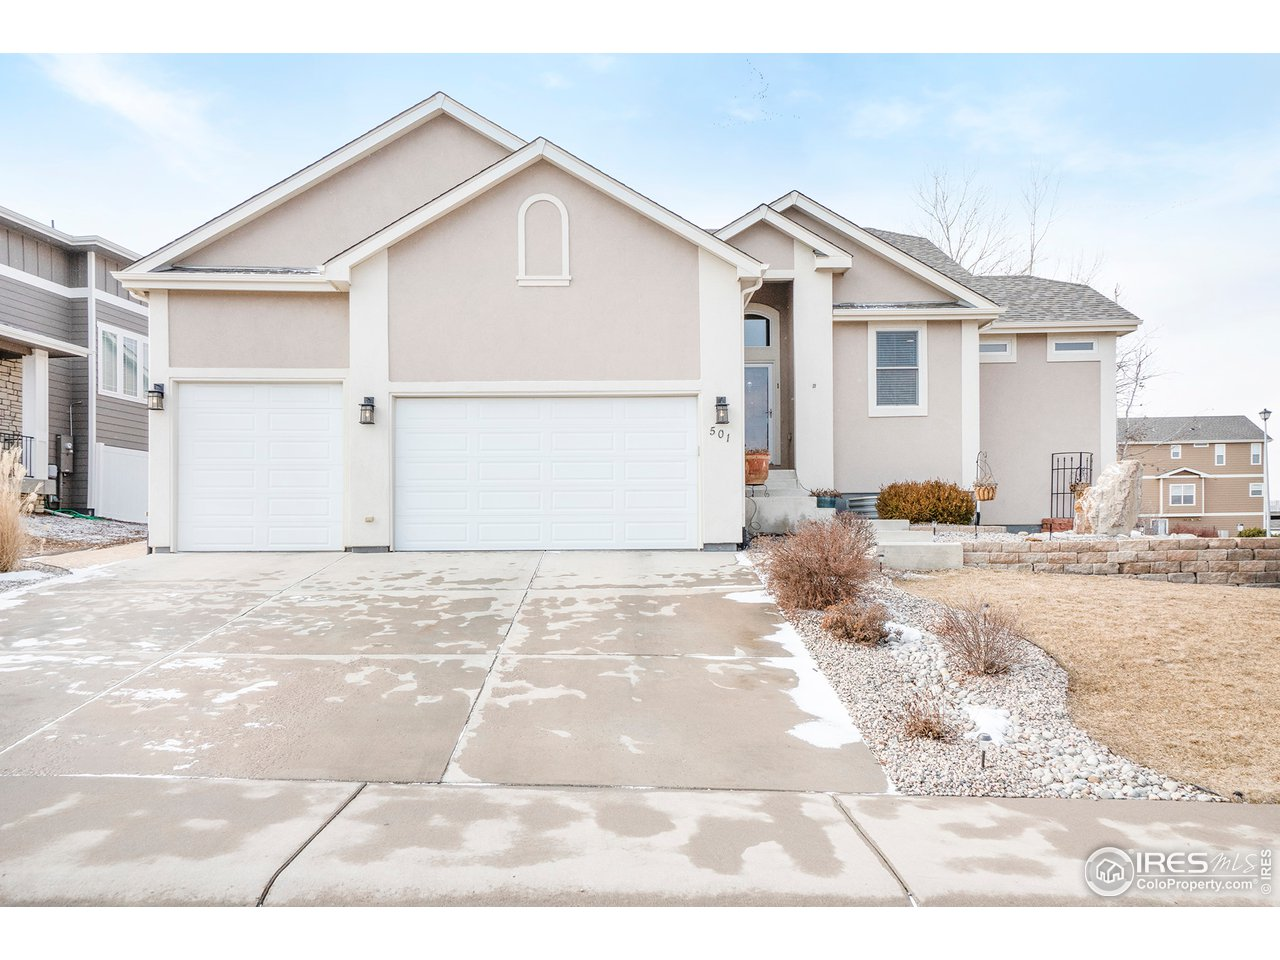 501 56TH AVE, GREELEY, CO 80634